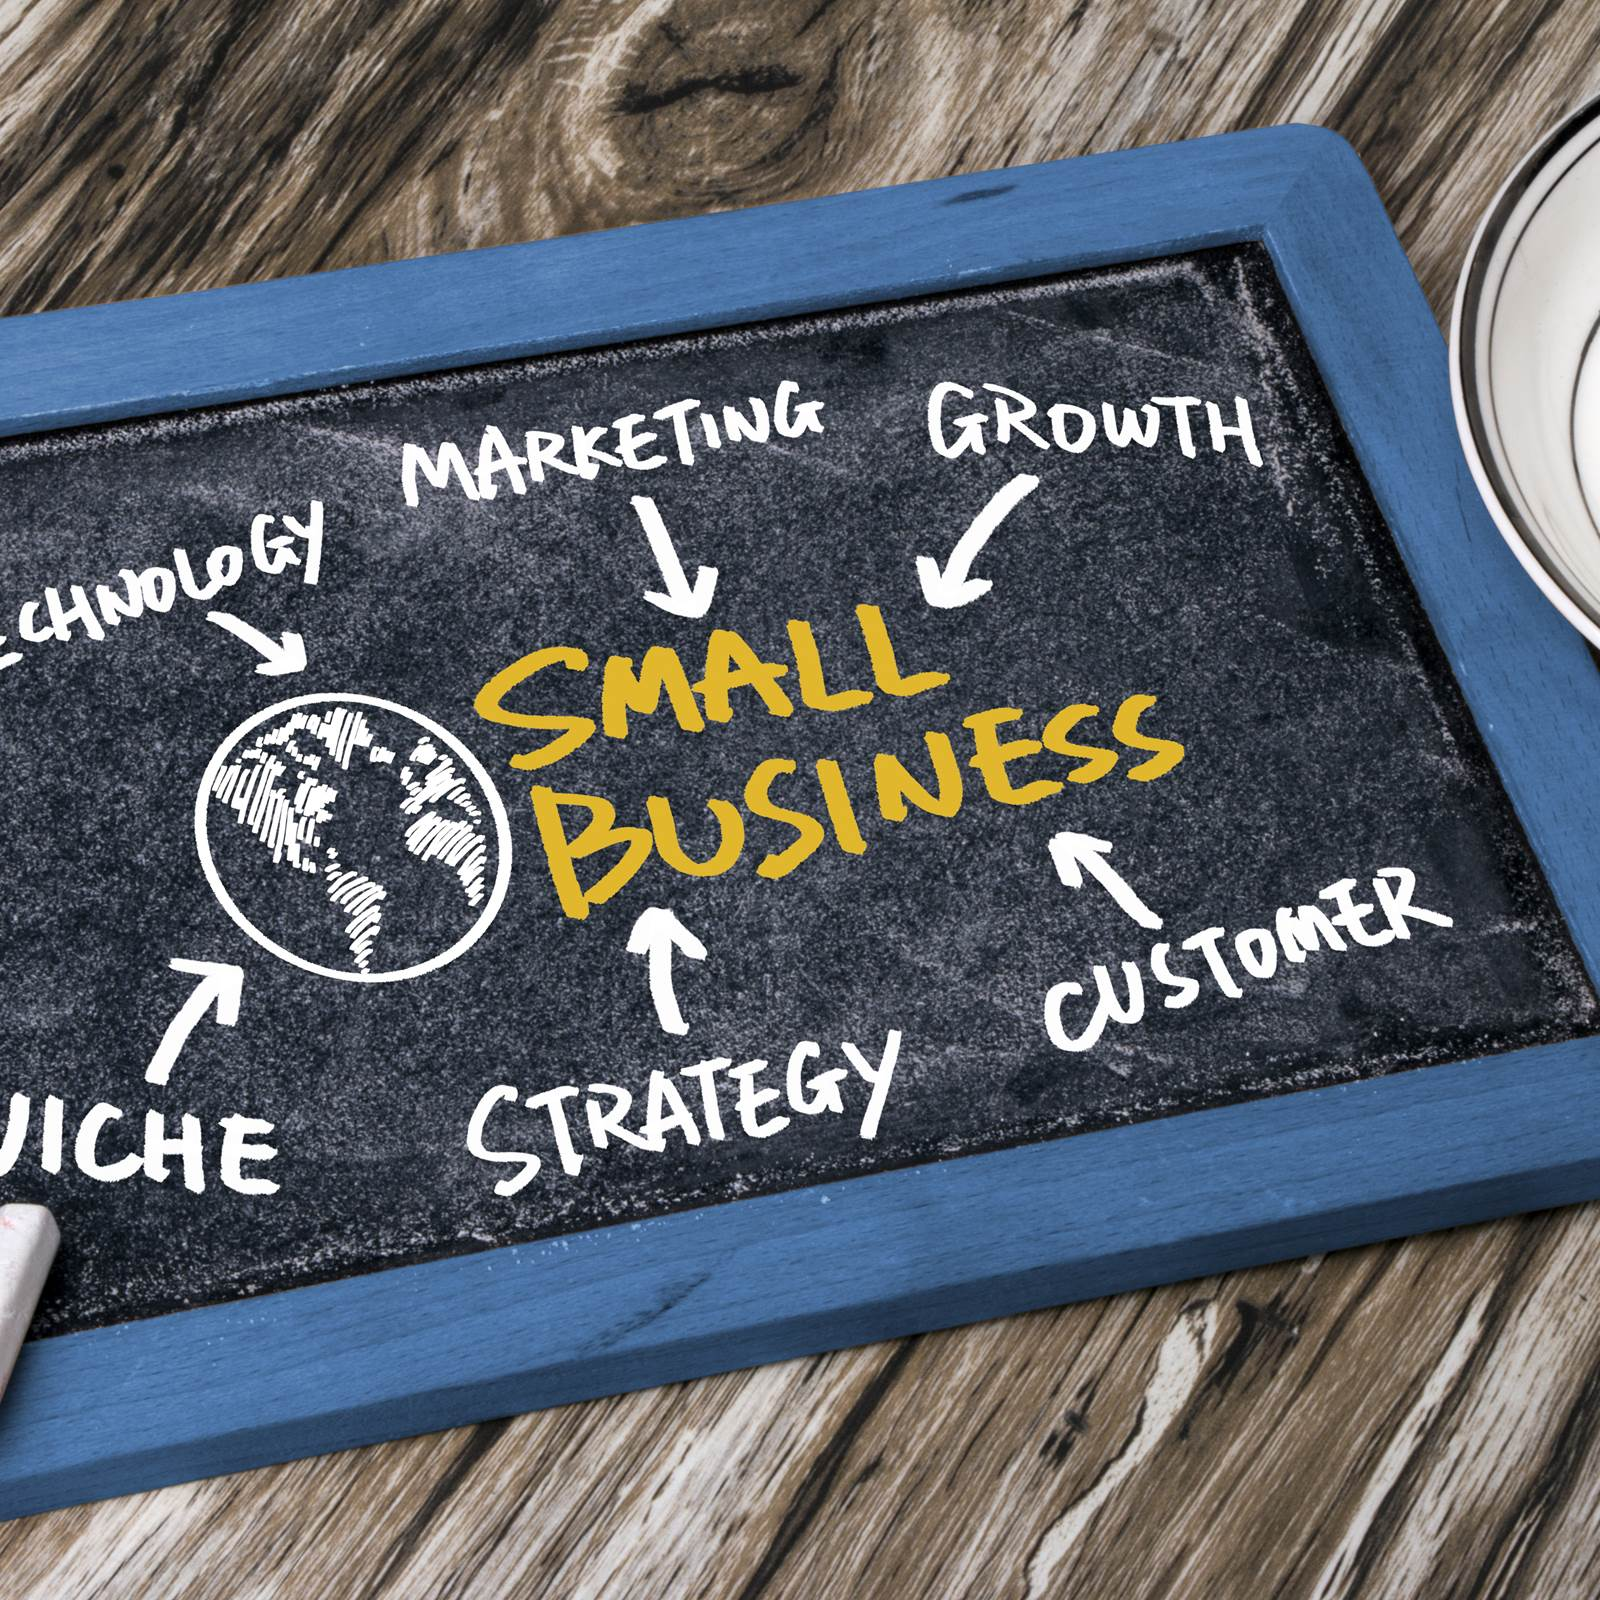 Small business photo